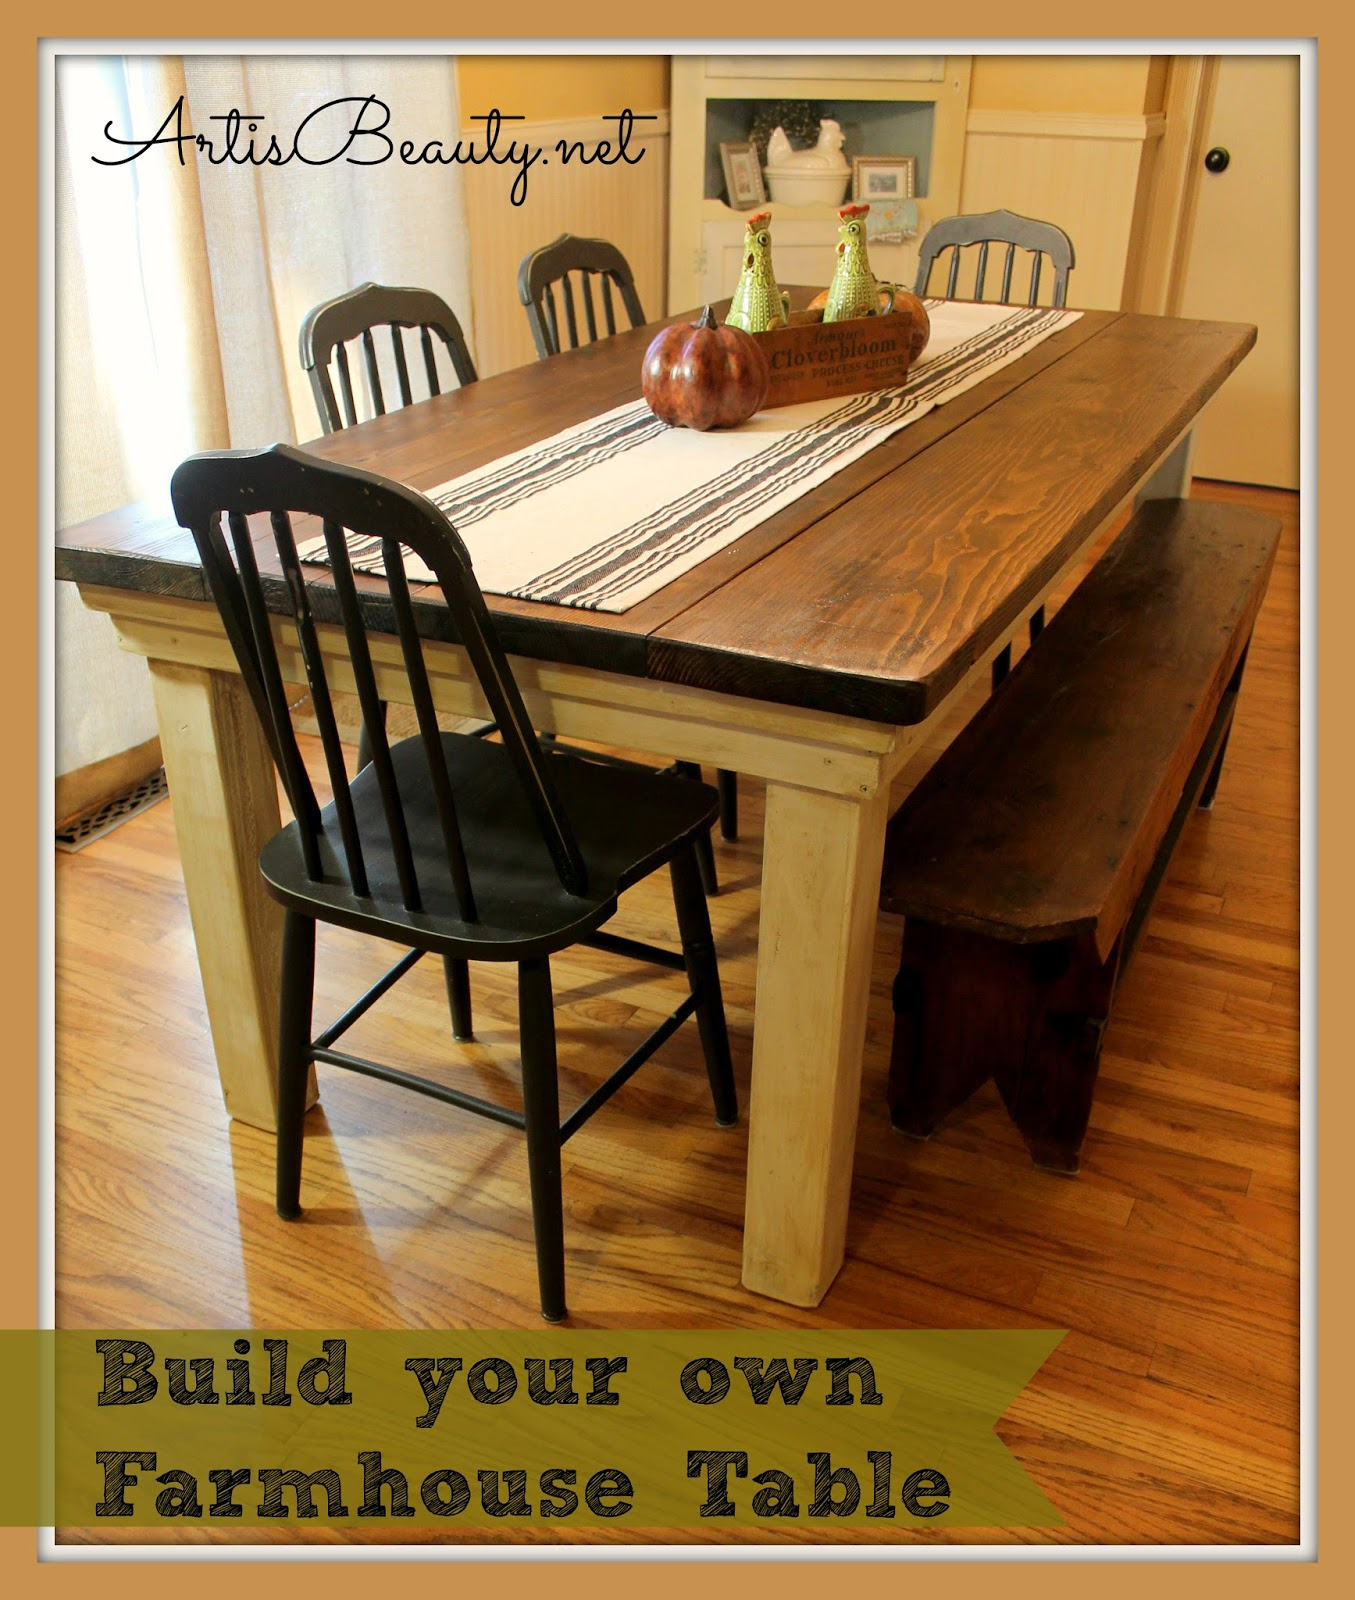 How To Build Your Own Farmhouse Table Art